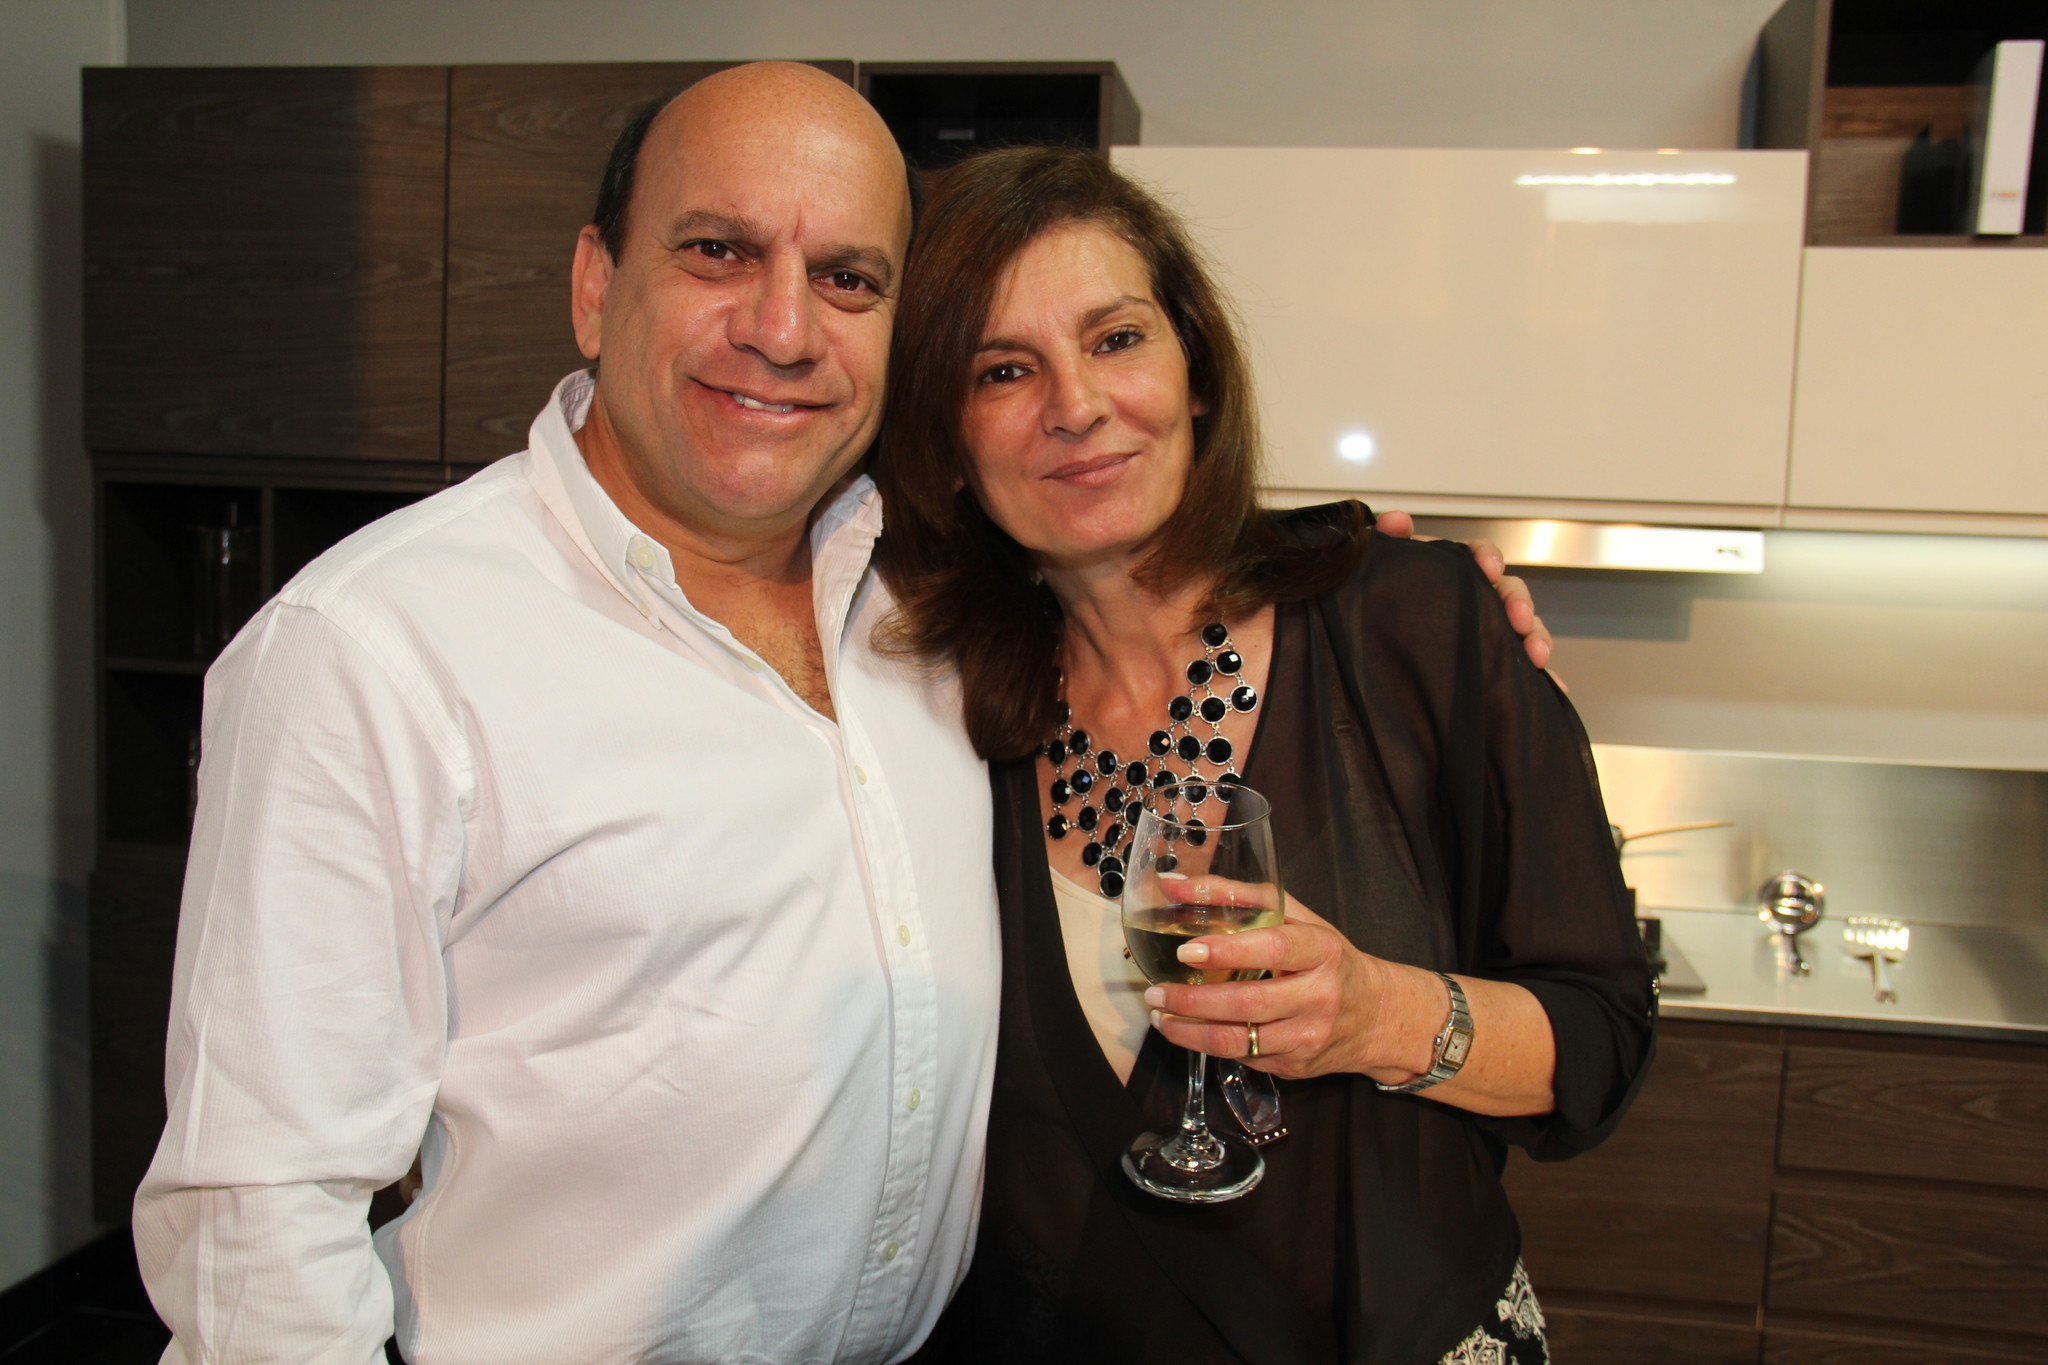 Society Scene photos - Kitchen Prospect grand opening in Miami on June 18